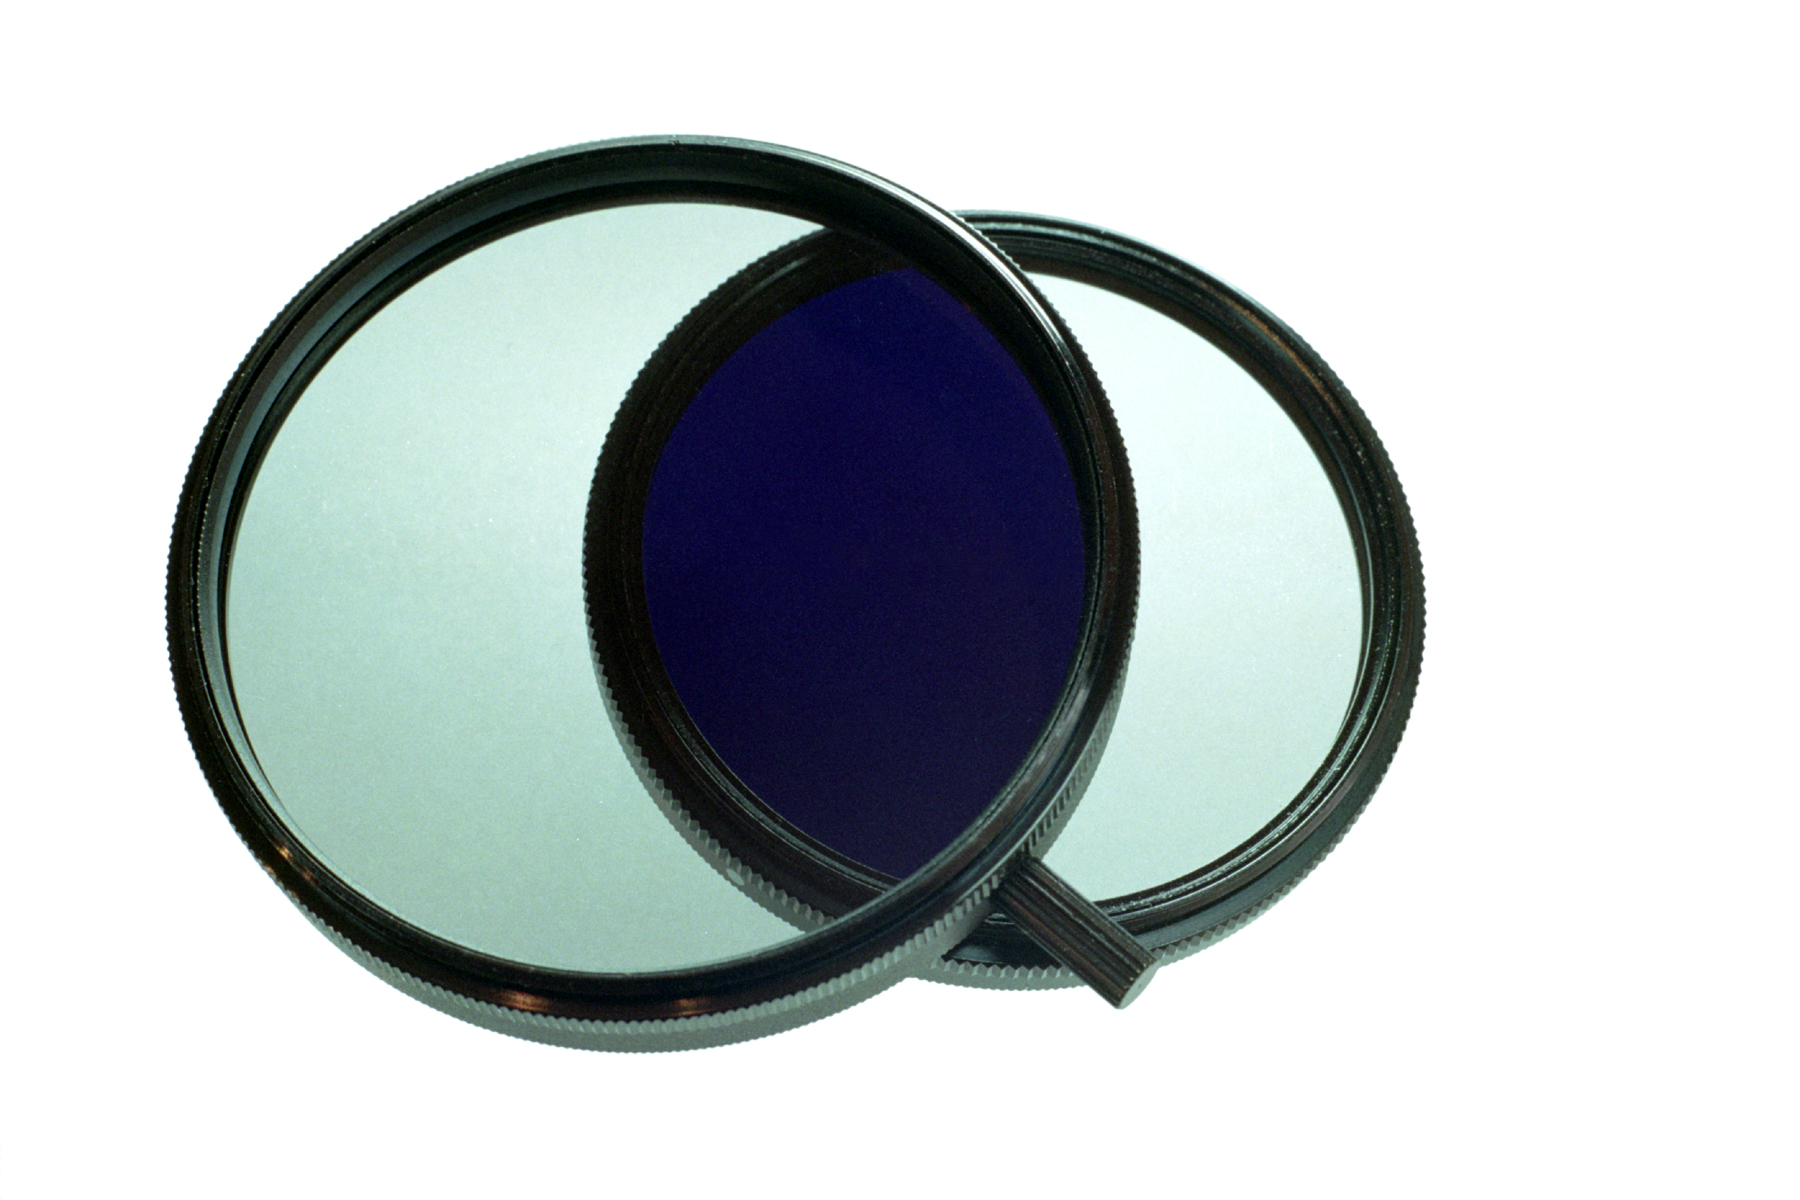 filterpolar3 Understanding Polarizing Filters and Natural Density Filters